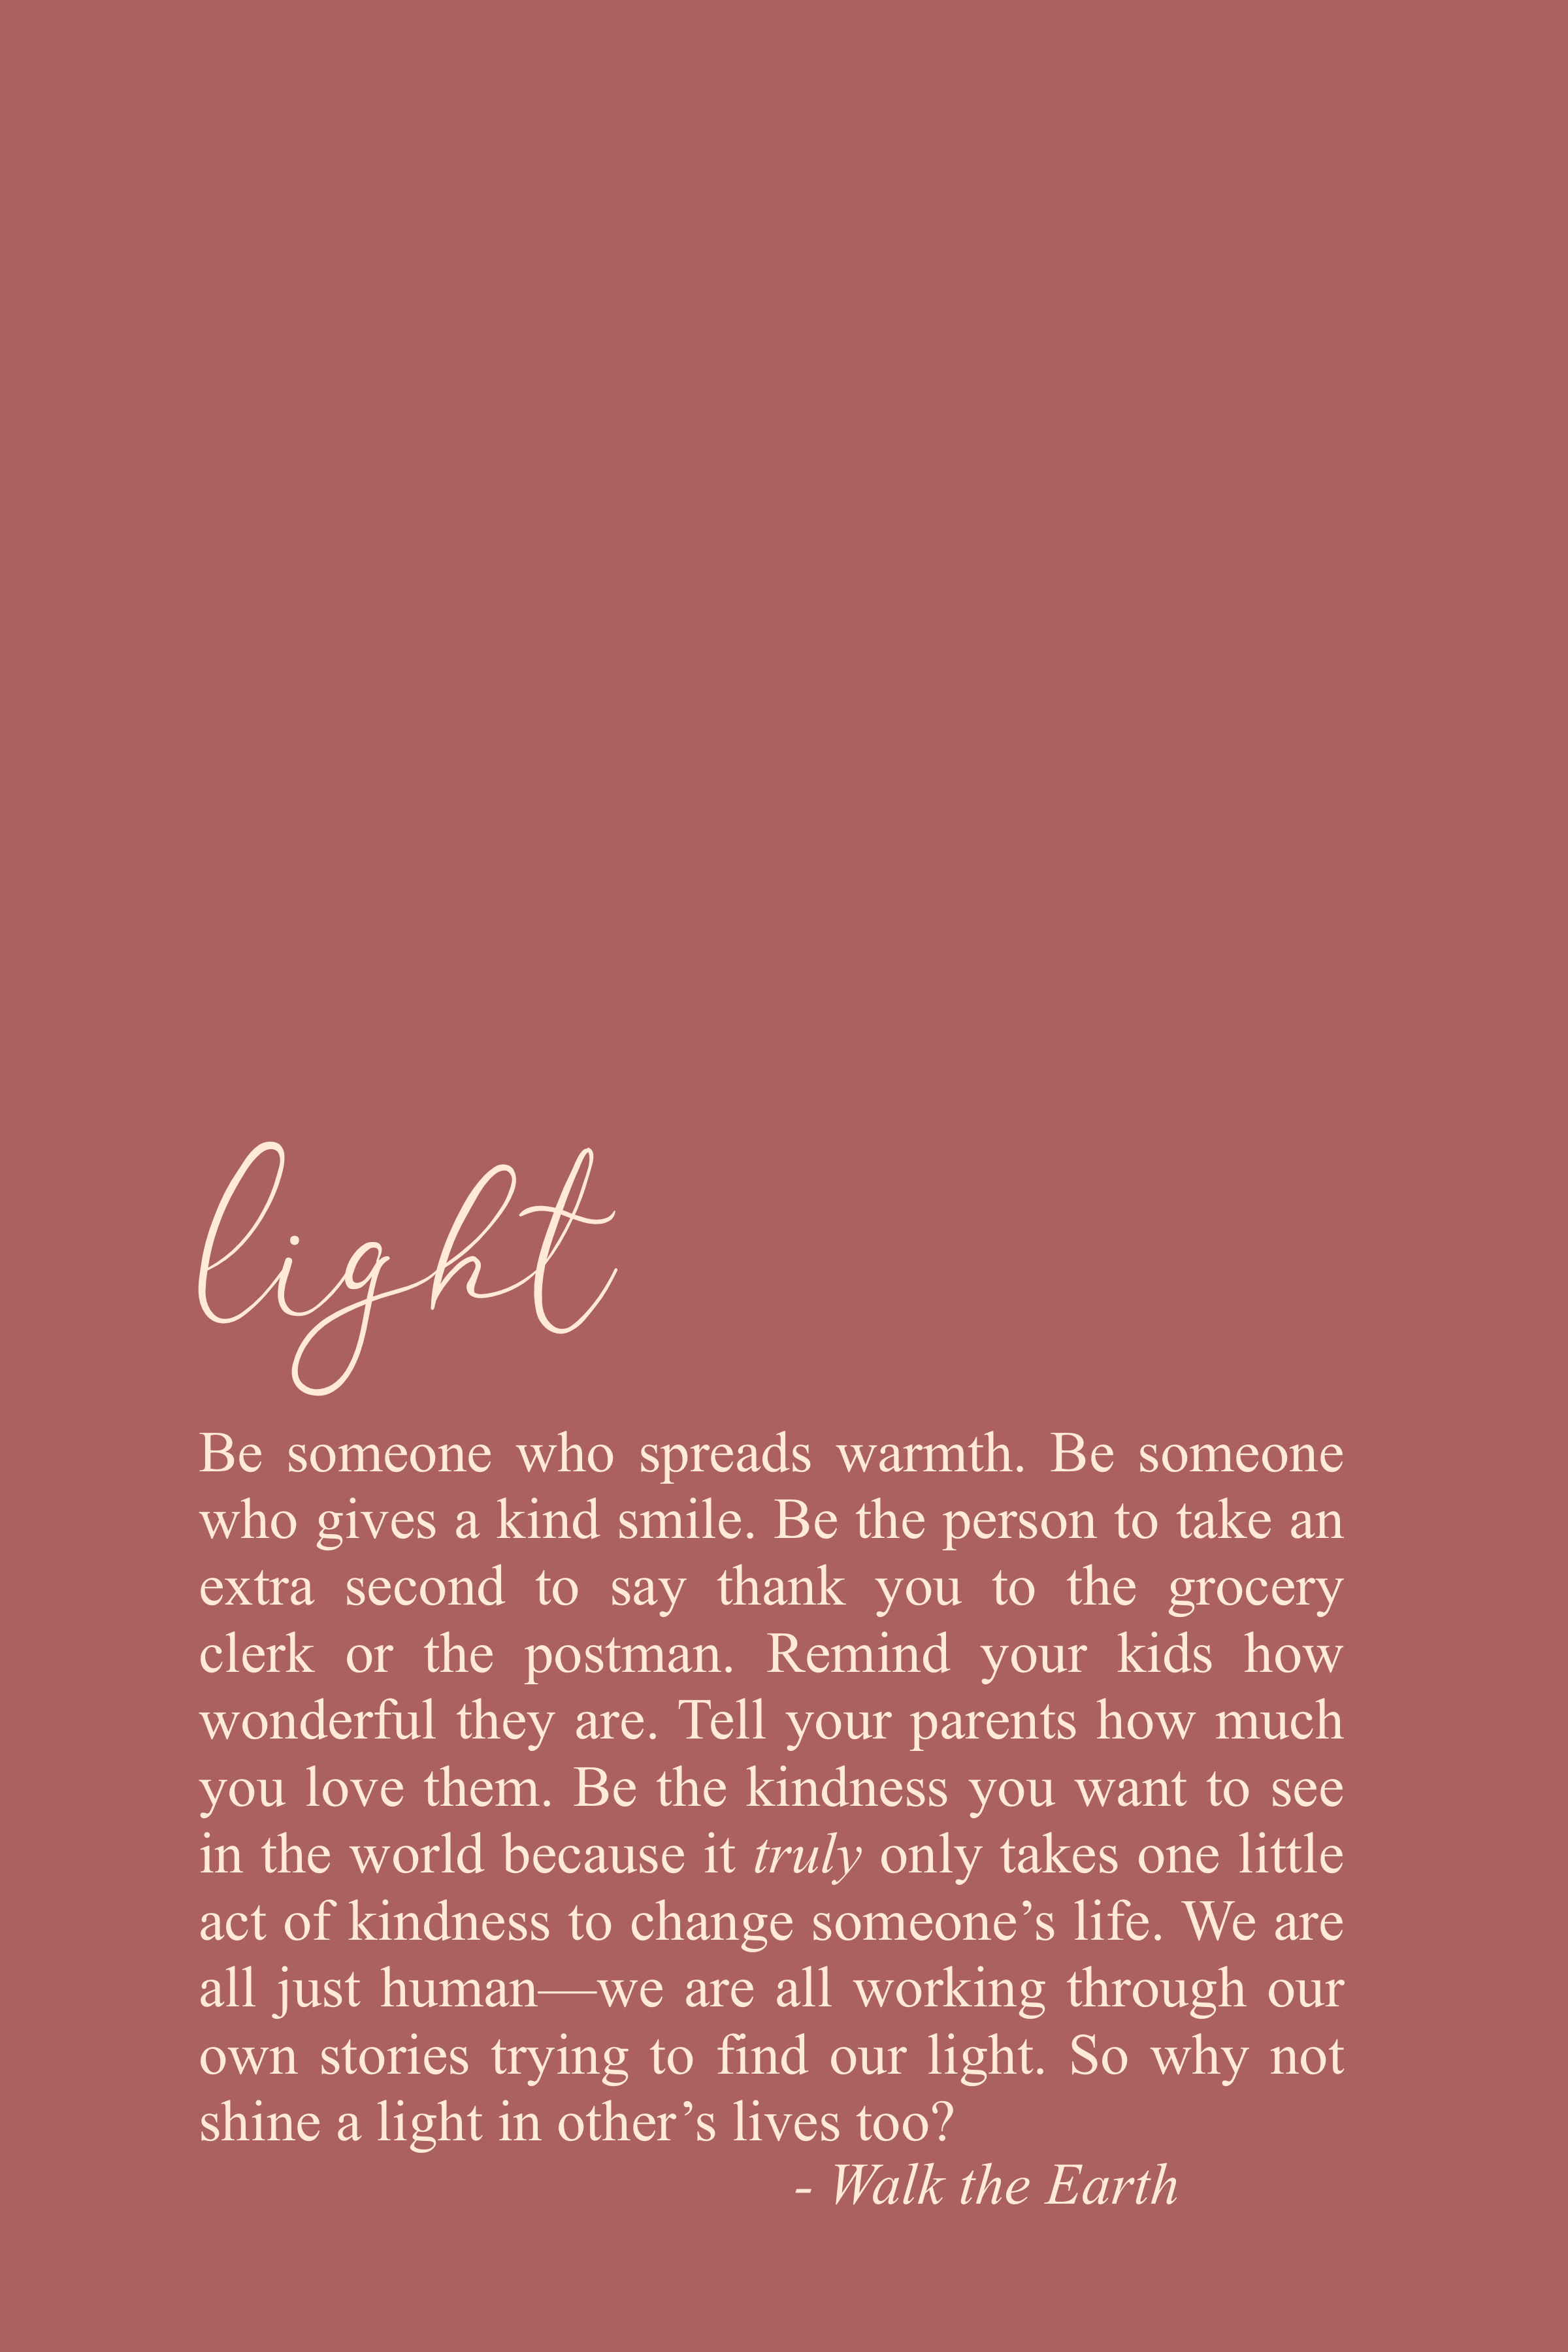 Kindness Quotes Kindness Matters Be Kind Inspirational Words To Live By Encouragement Quotes Inspirational Words Words Quotes